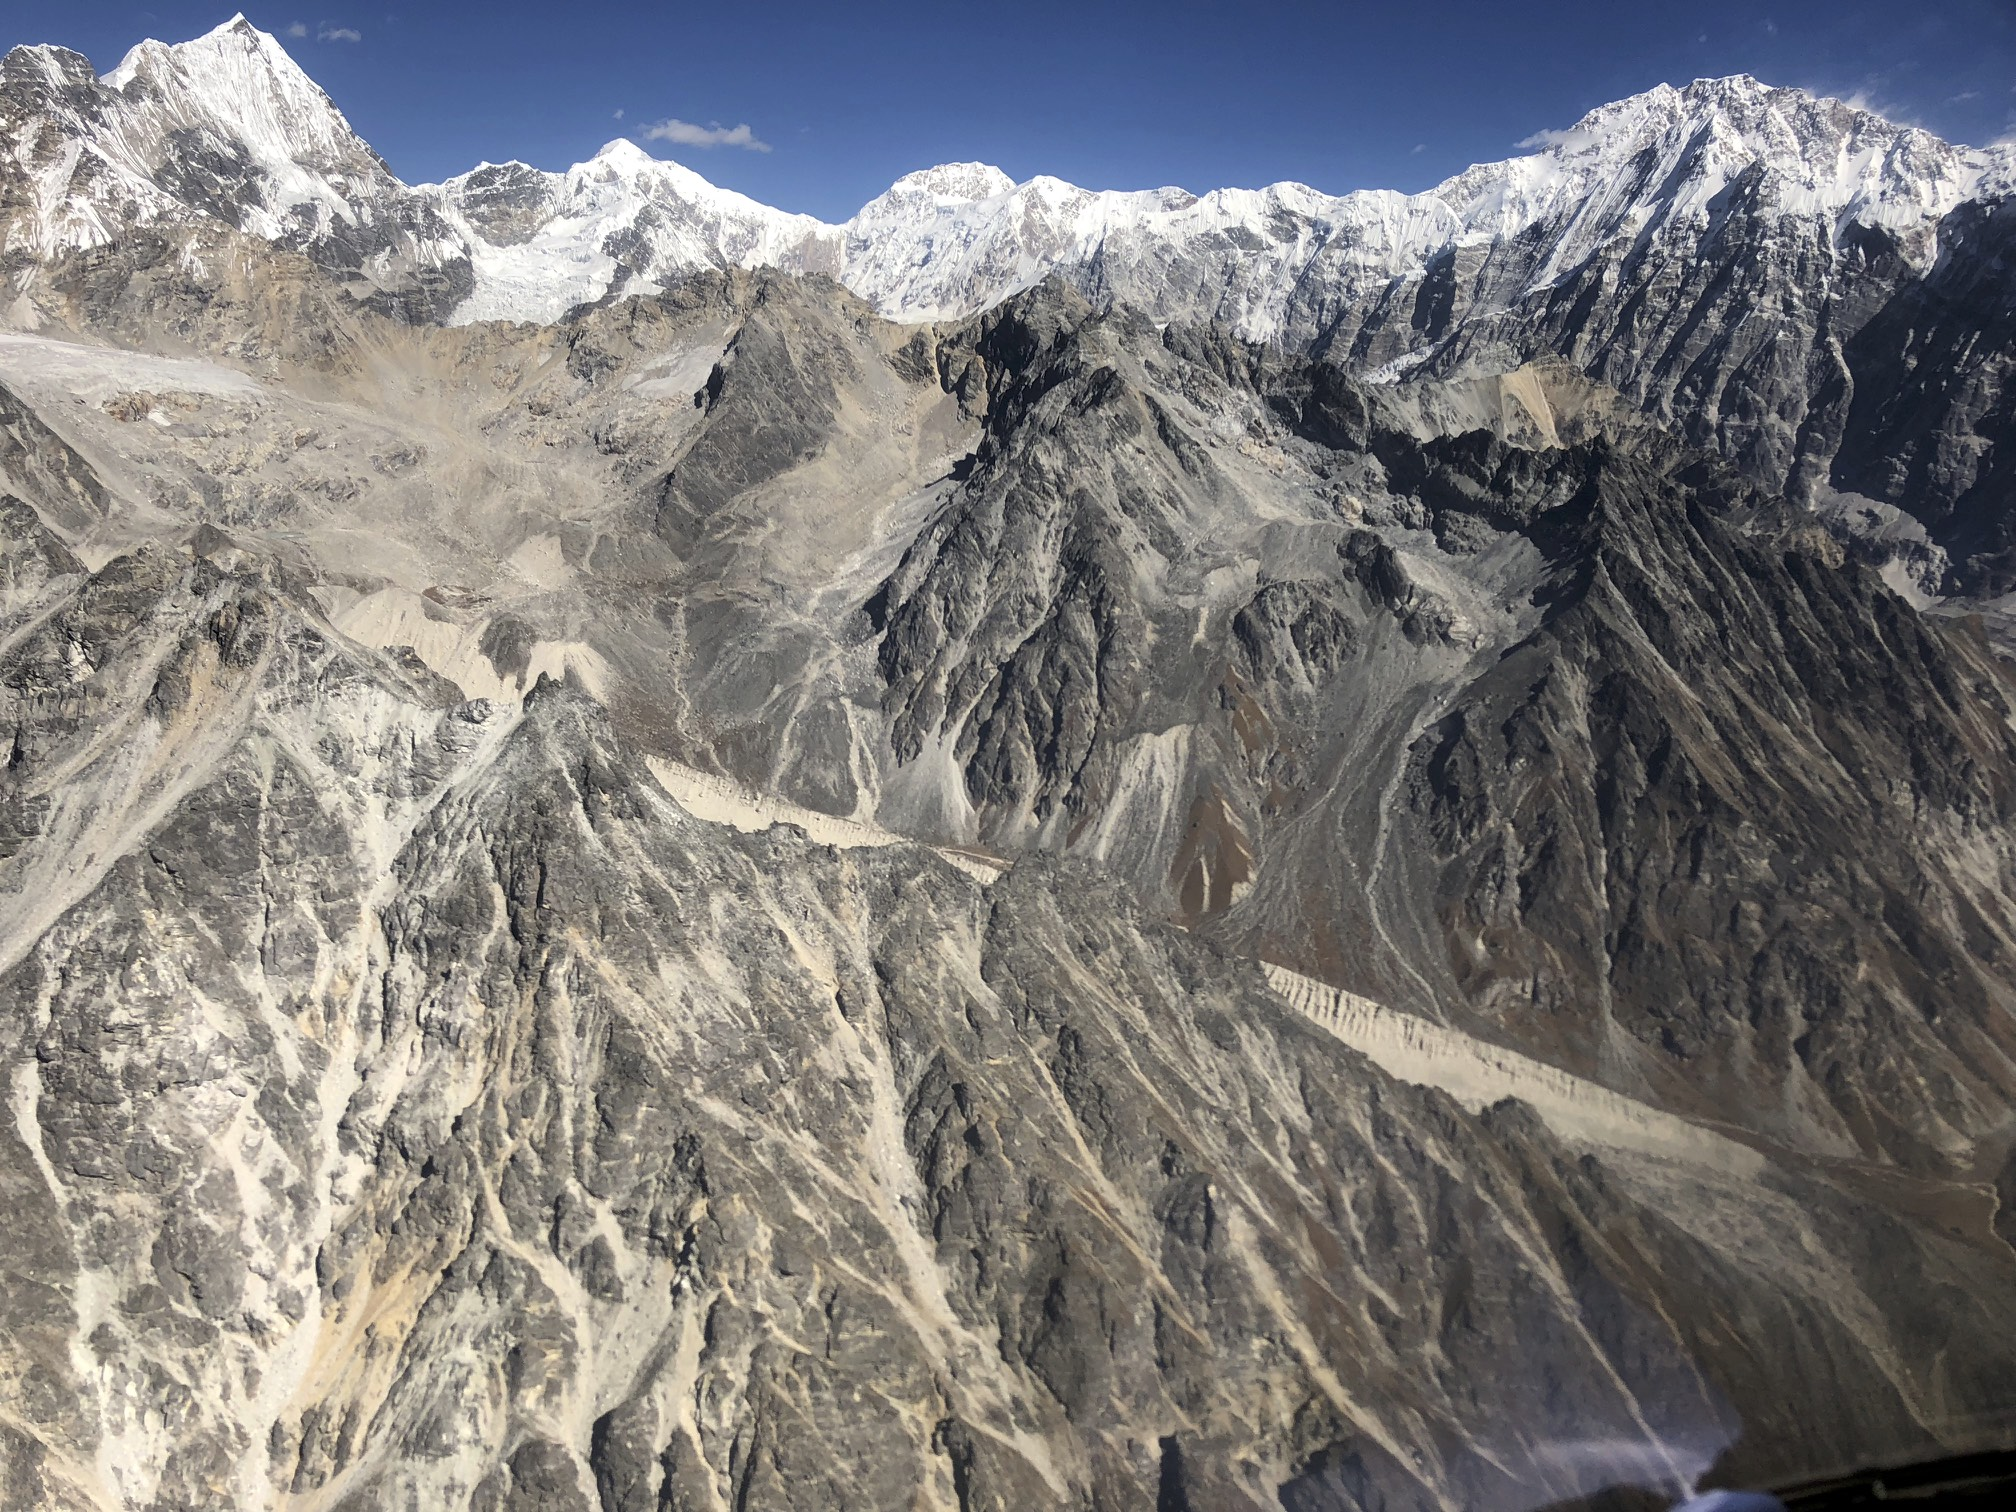 Langtang Himal from the helicopter. Kyunggari 6,599m on the left and Shaishapangma 8,013 on the right. The Shalbachum Glacier is in the middle.